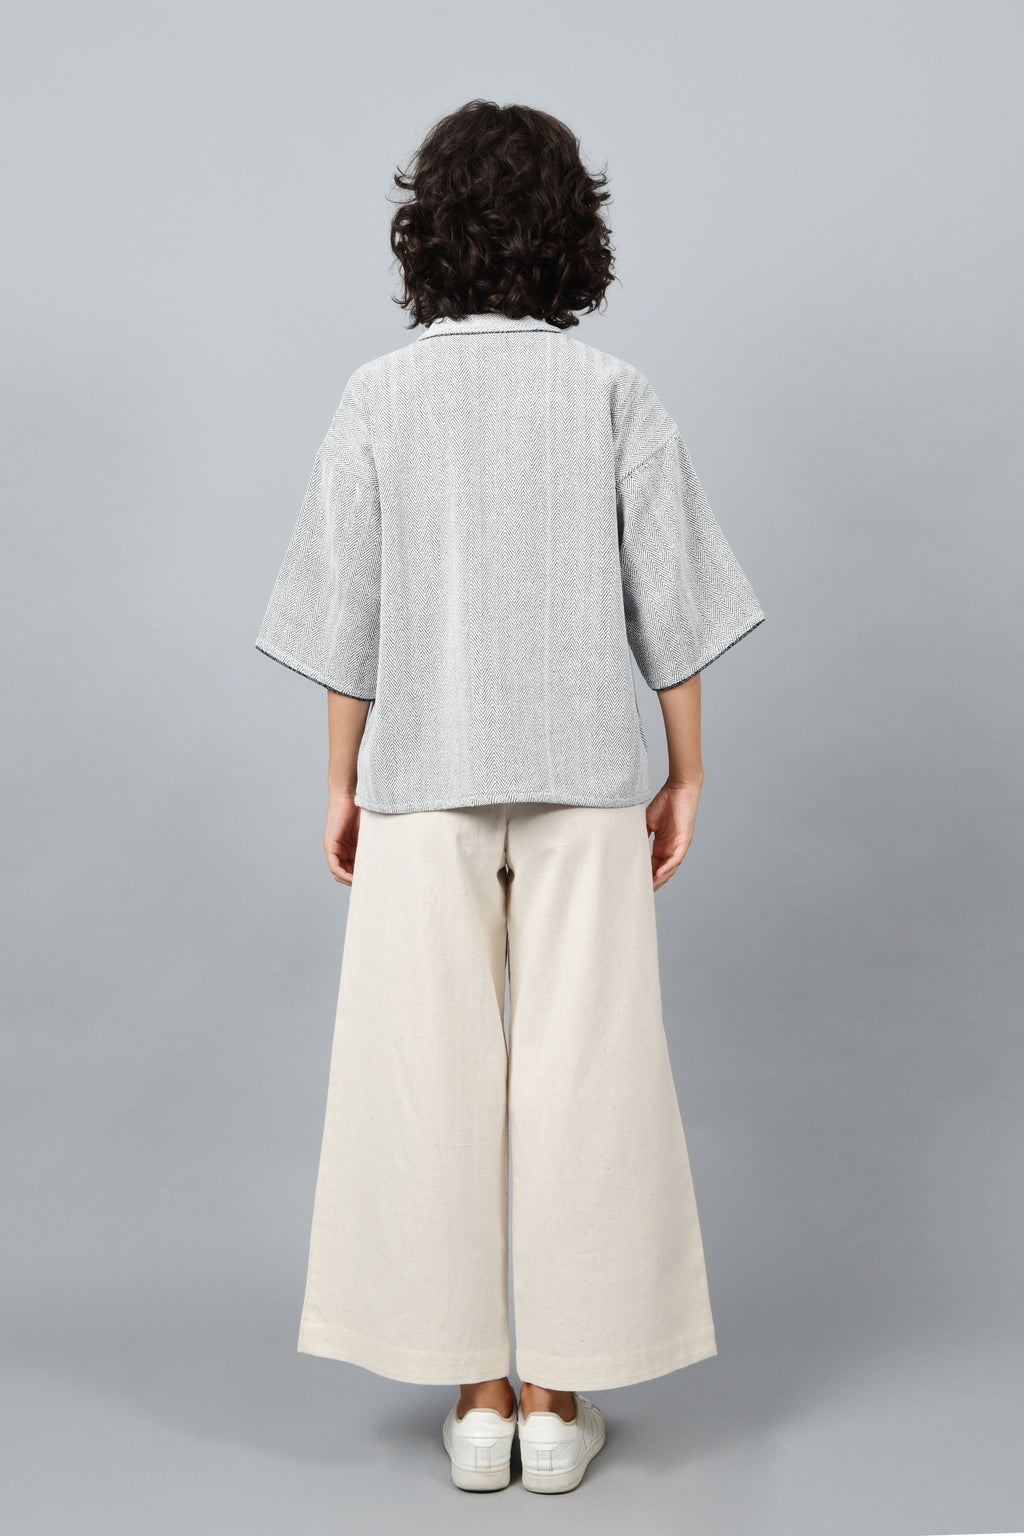 Back of a model wearing anti-fit short black shrug made in pointed twill with handspun and handwoven khadi cotton. Paired with off-white spaghetti, palazzos and white shoes.